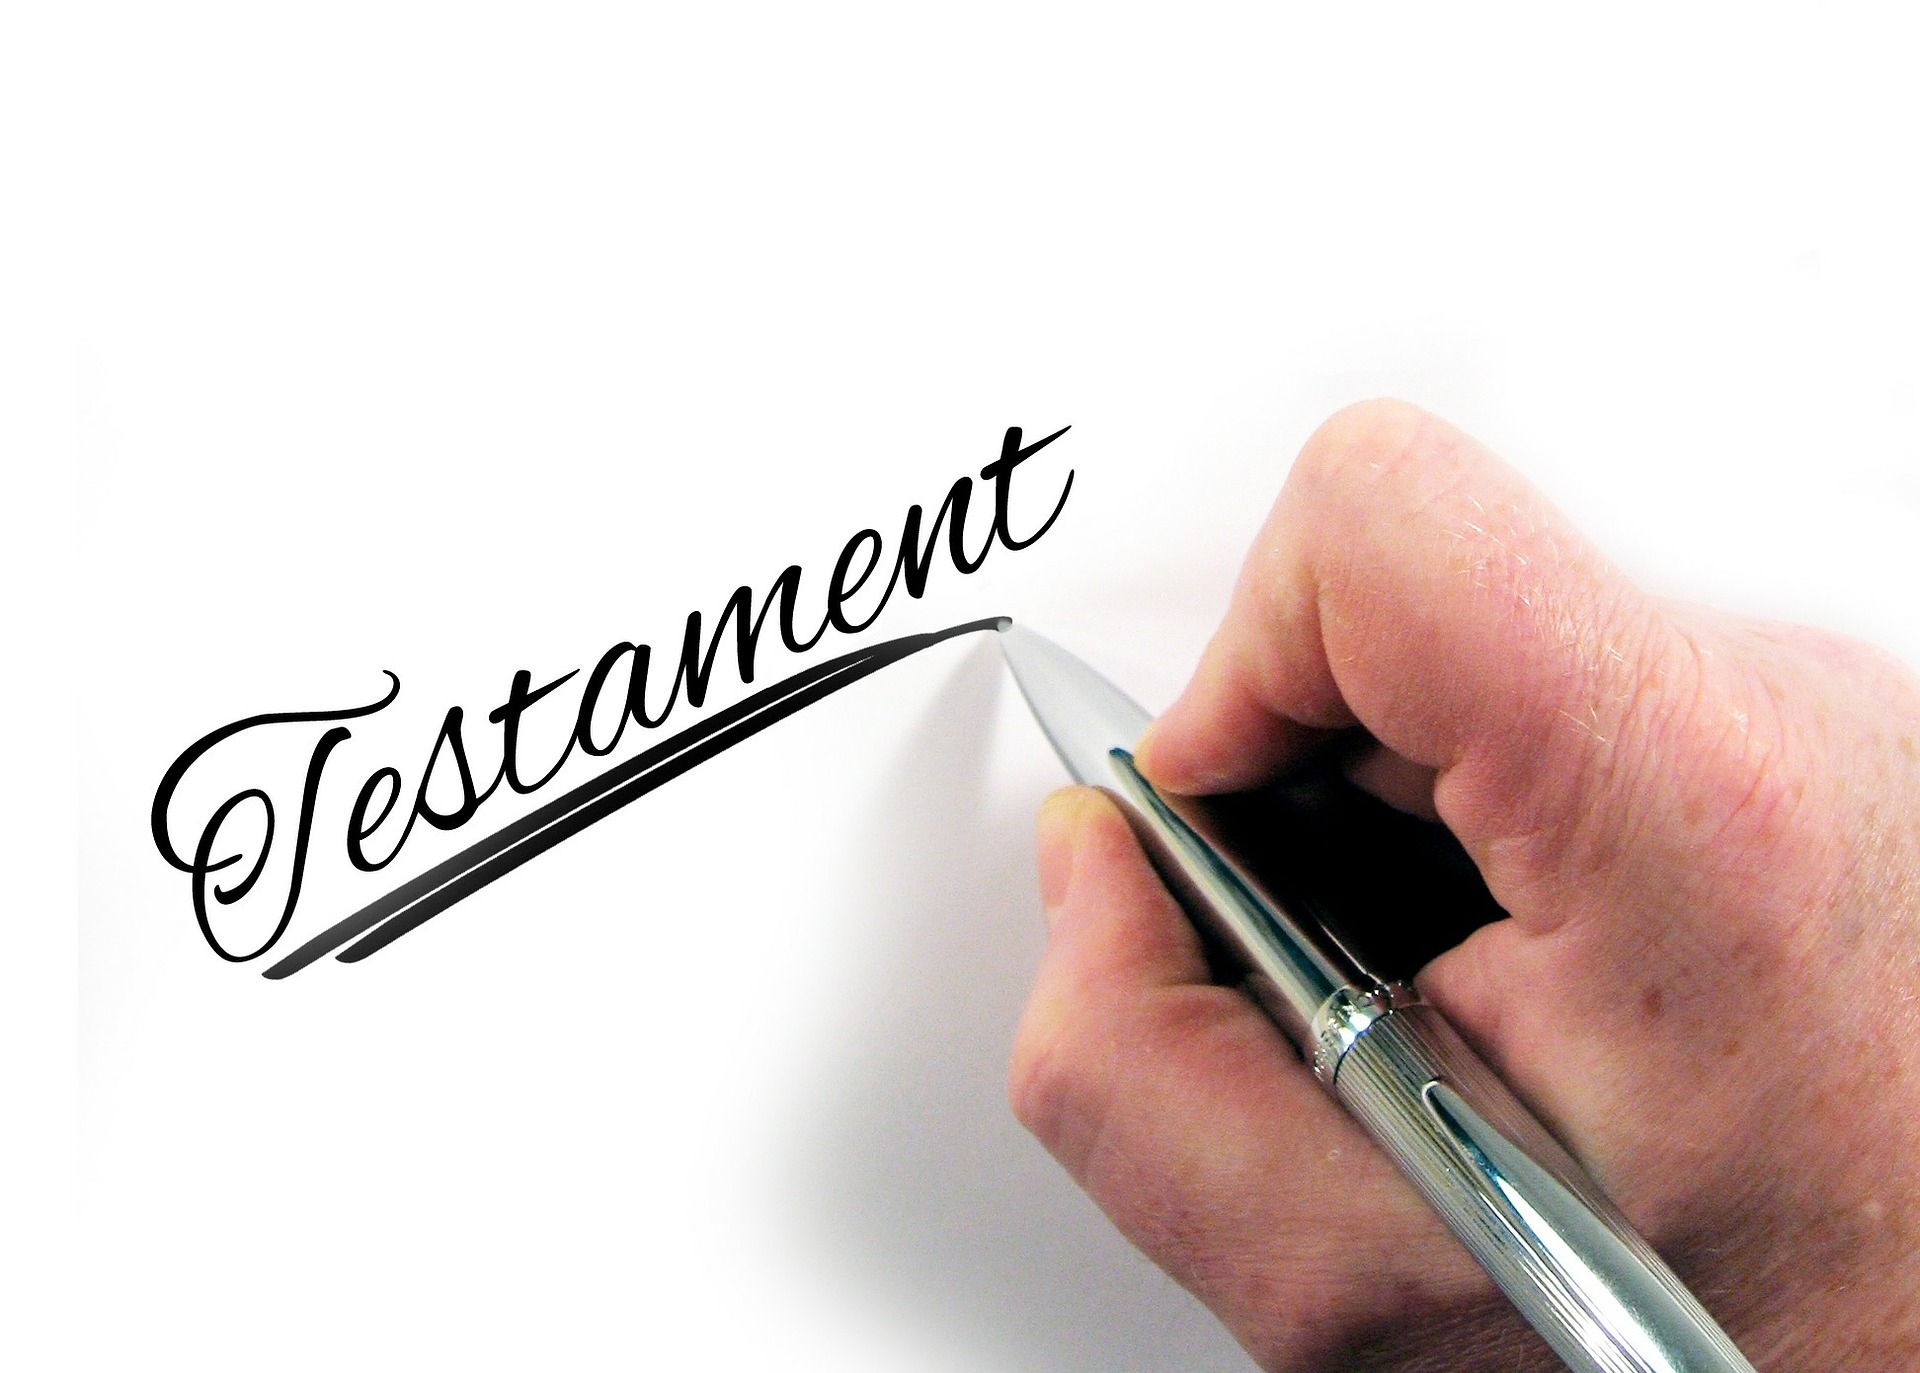 Writing testament